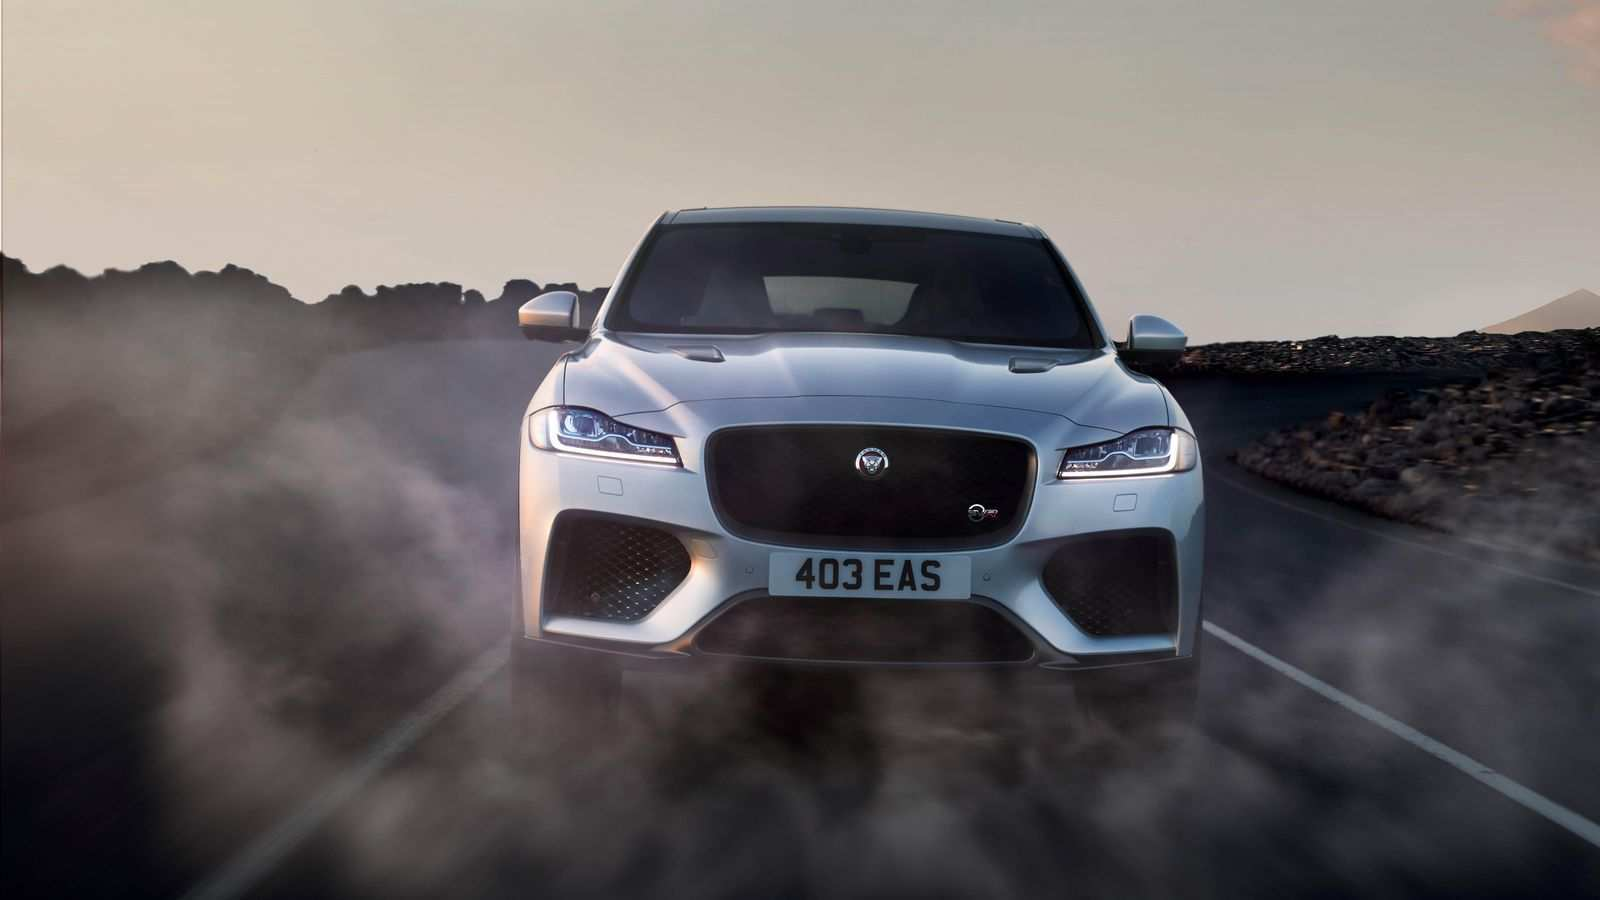 89 Great 2019 Jaguar Xf V8 Specs New Concept for 2019 Jaguar Xf V8 Specs